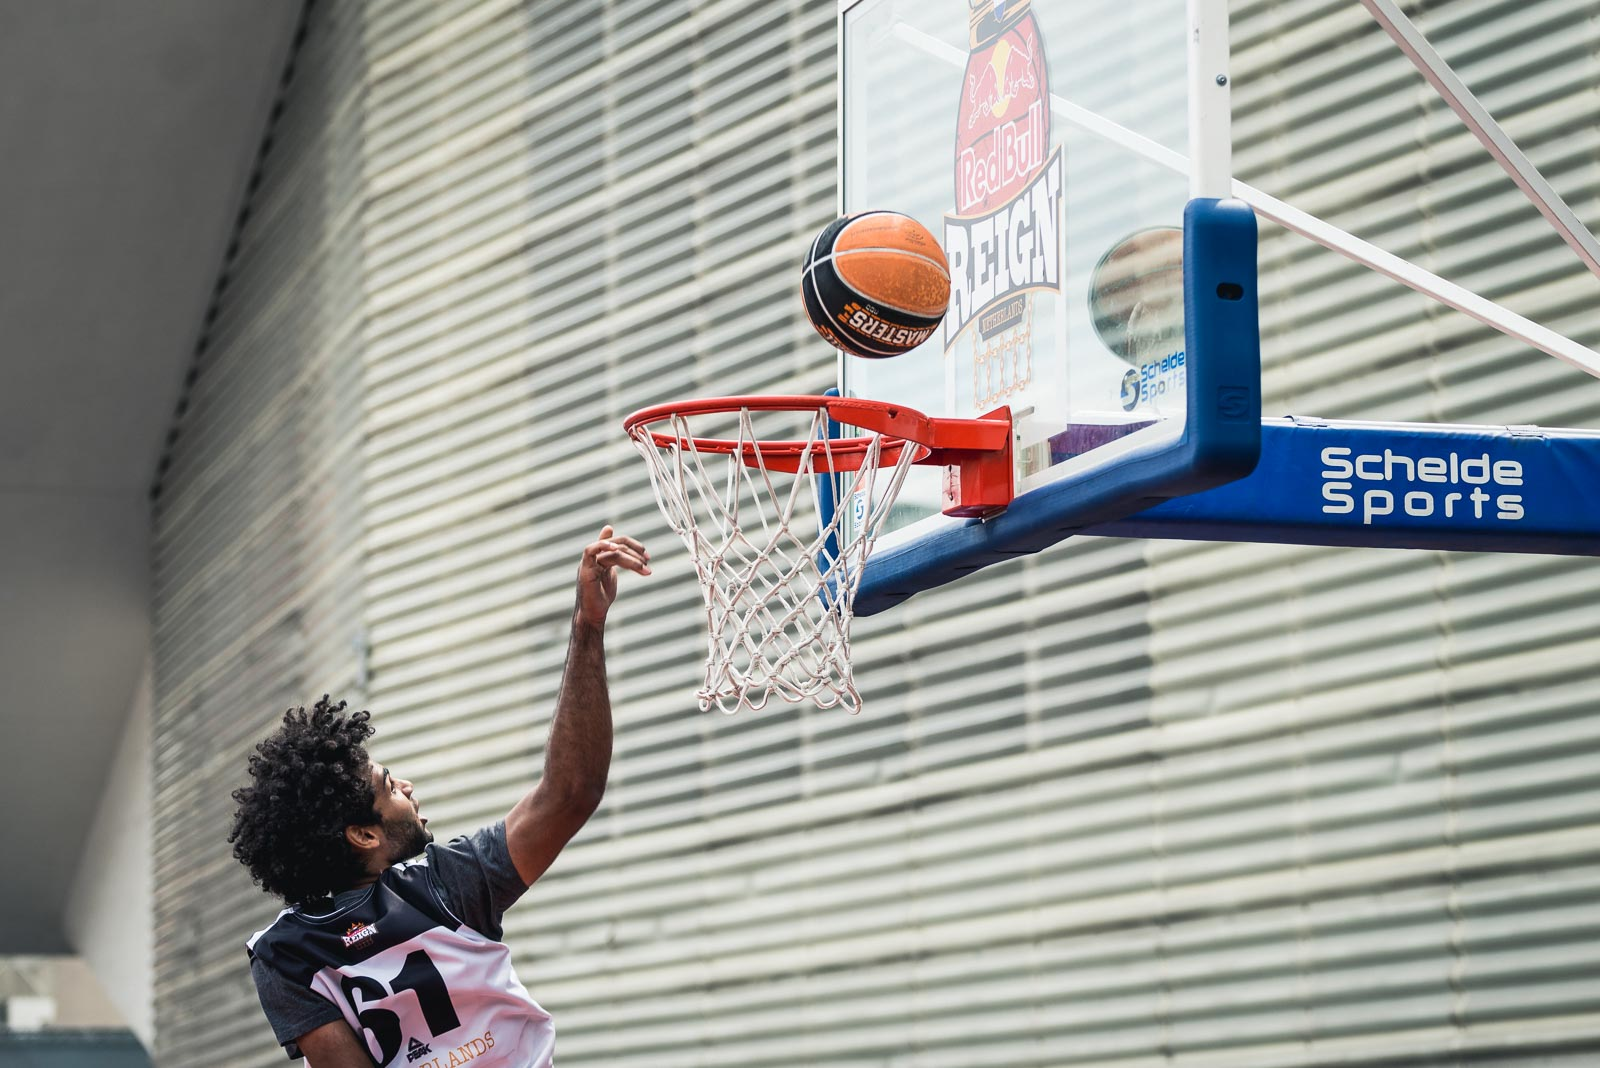 Basketball player scoring a point during Red Bull Reign in Rotterdam